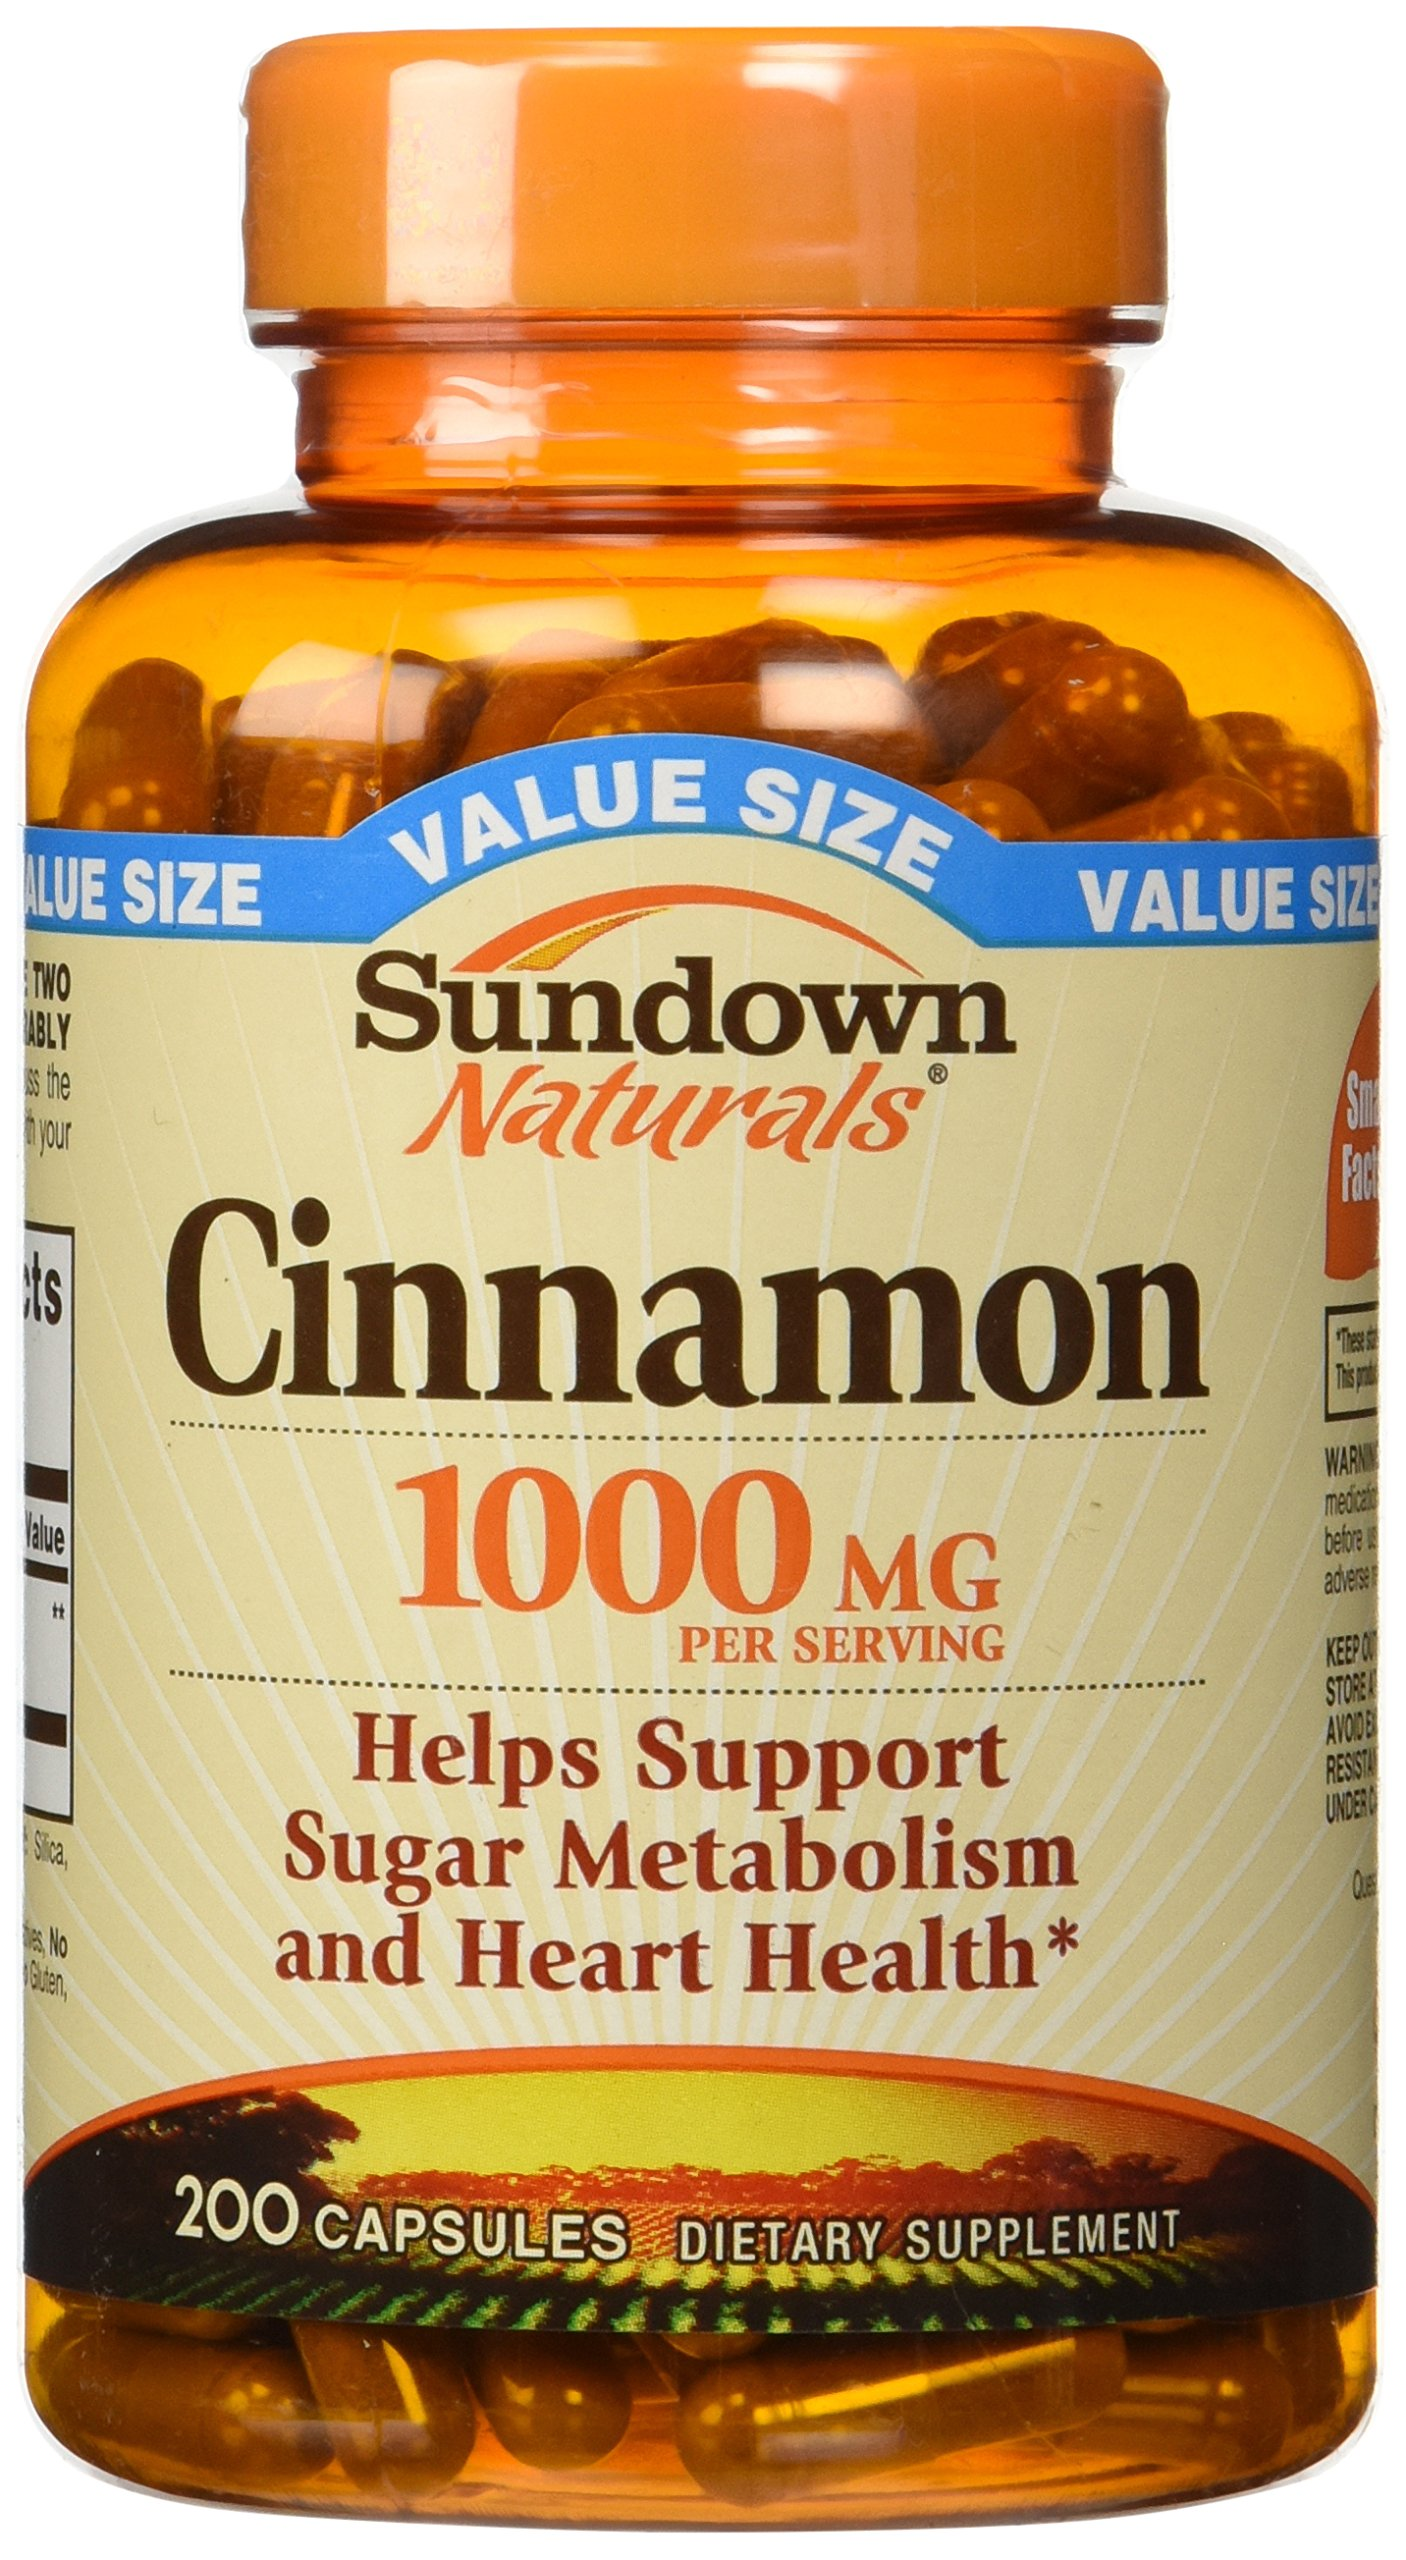 Sundown Naturals Cinnamon 1000 Mg Capsules Value Size, 200 Count pack of 2